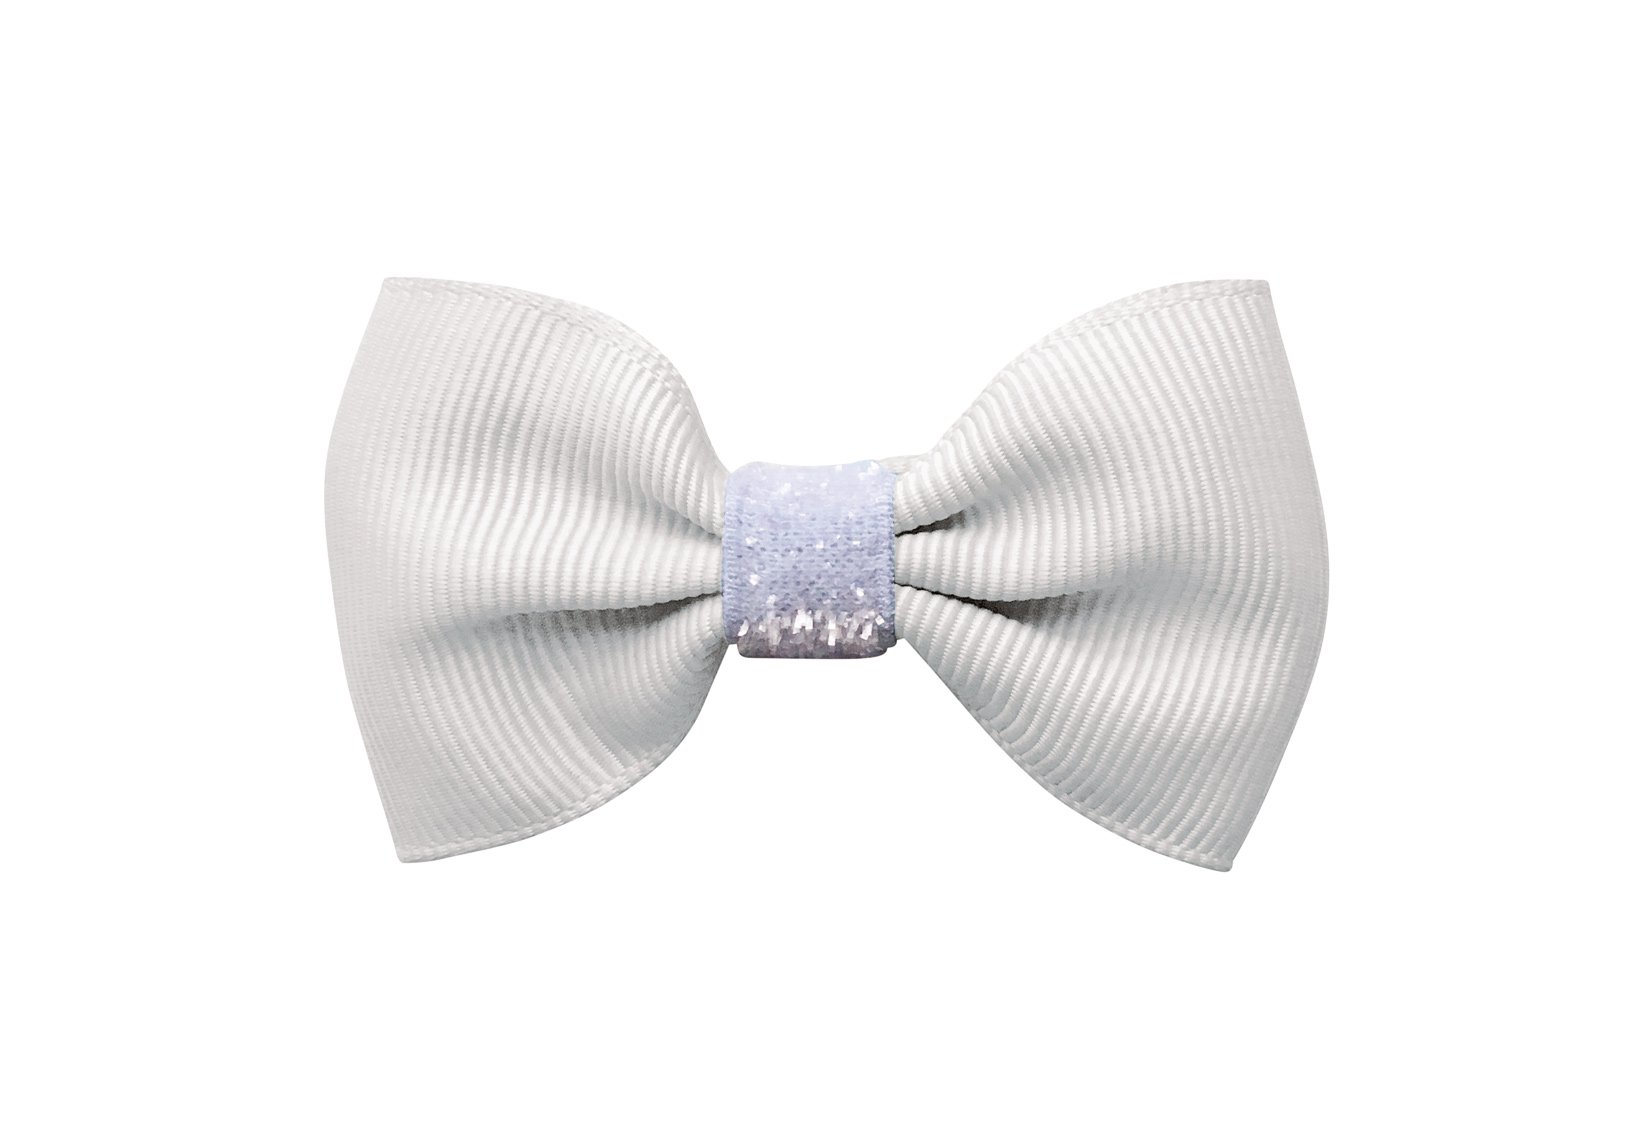 White Small Bowtie Bow with Colored Glitter Middle – Alligator Clip